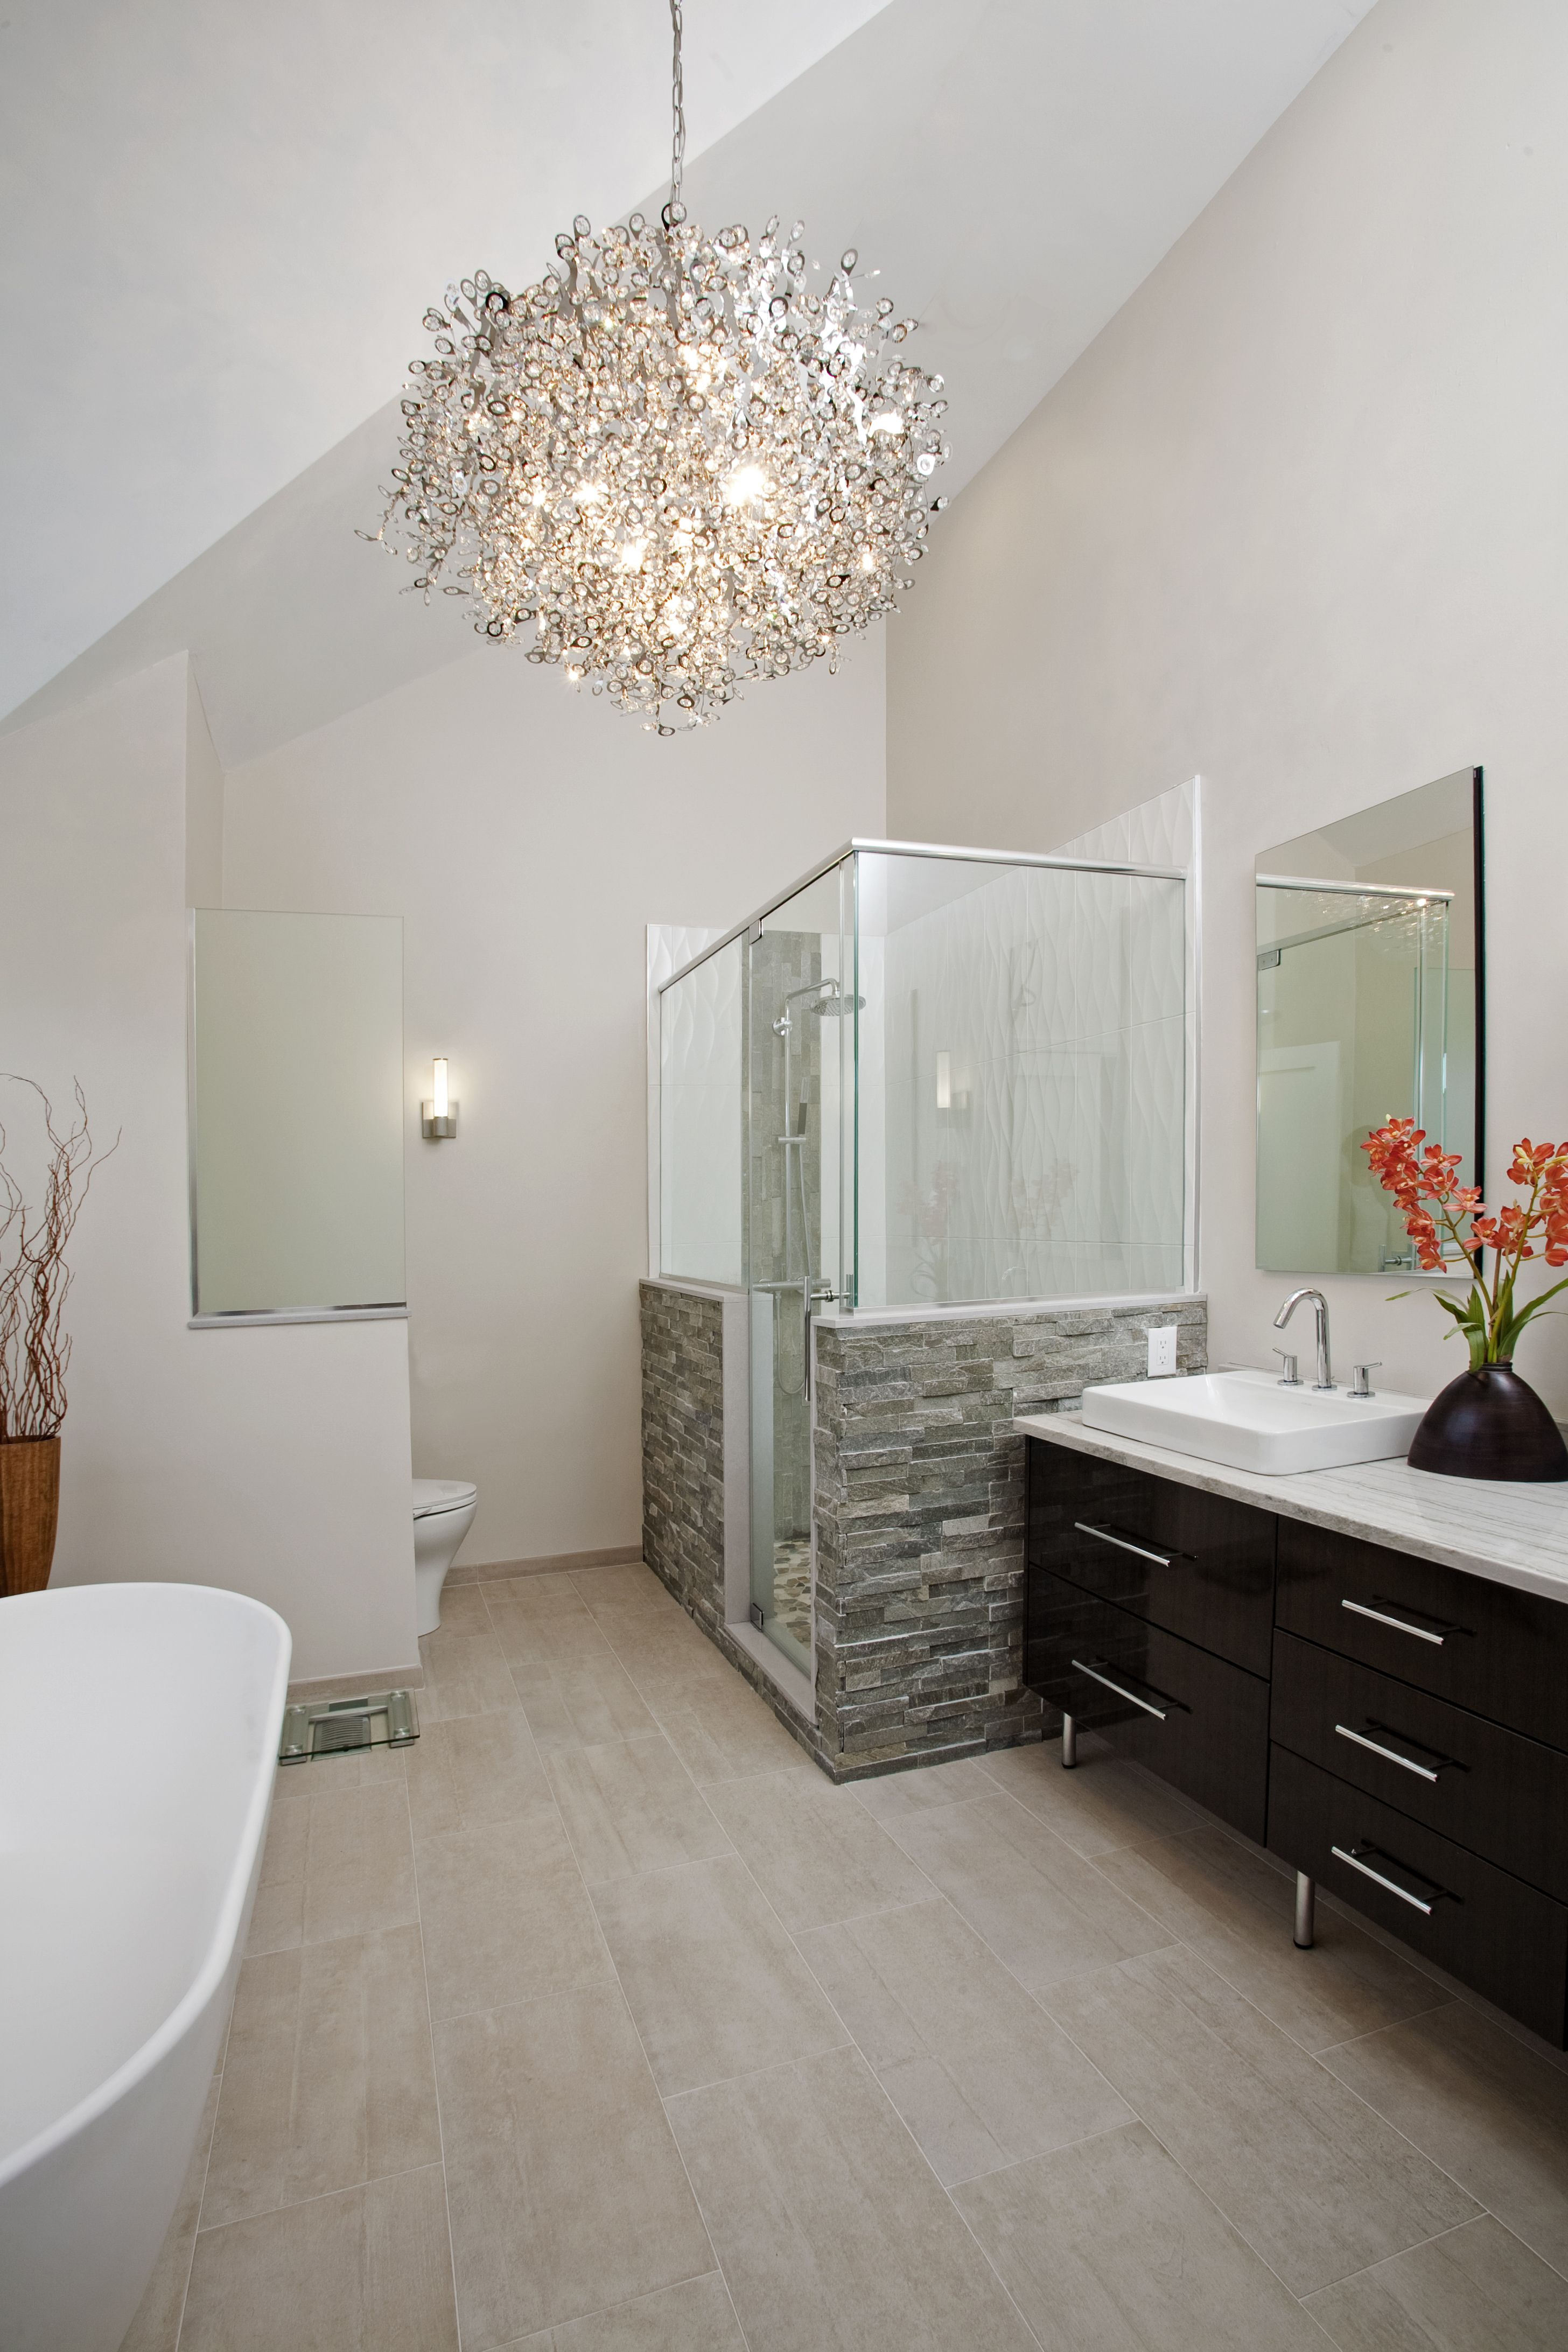 The Vaulted Ceiling And Contemporary Chandelier Really Make A